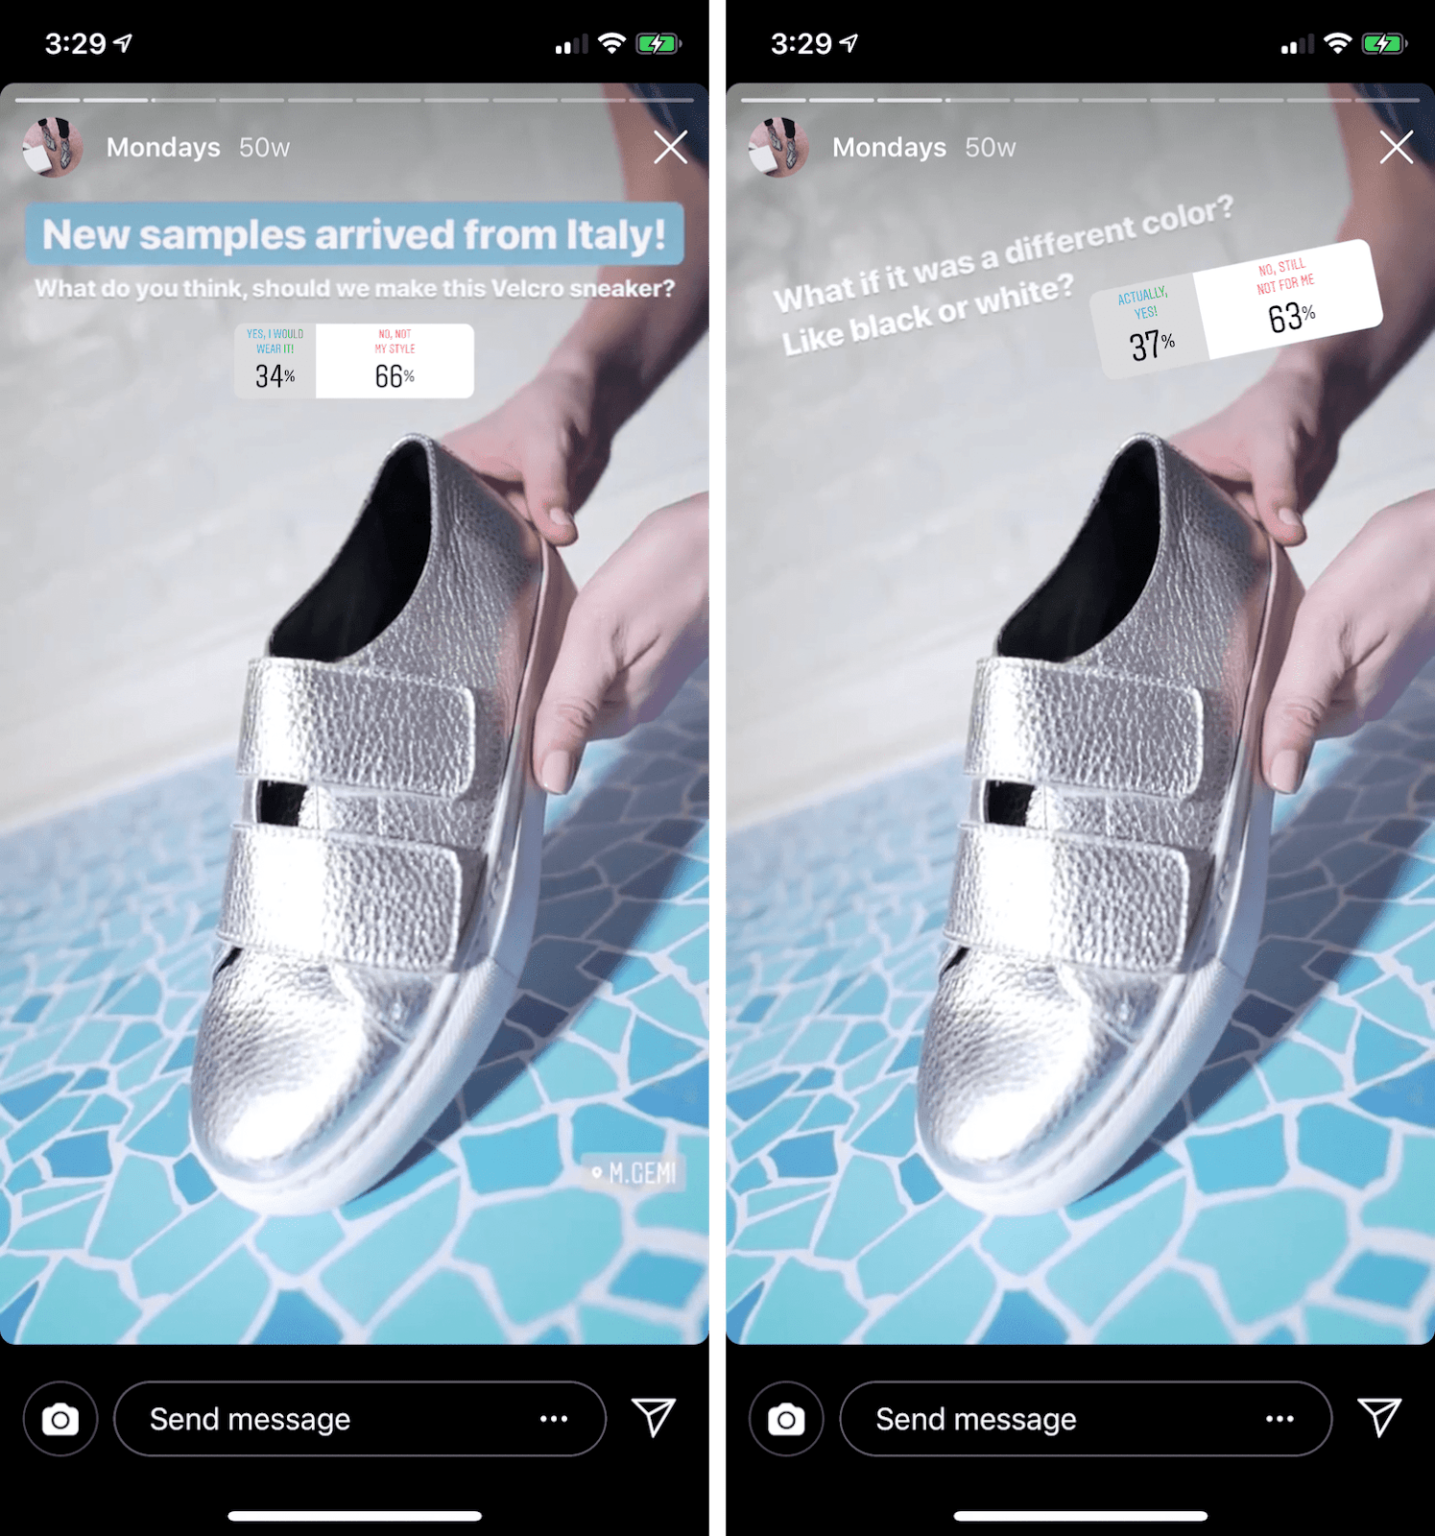 Using questionnaires to improve customer satisfaction - Instagram Polls